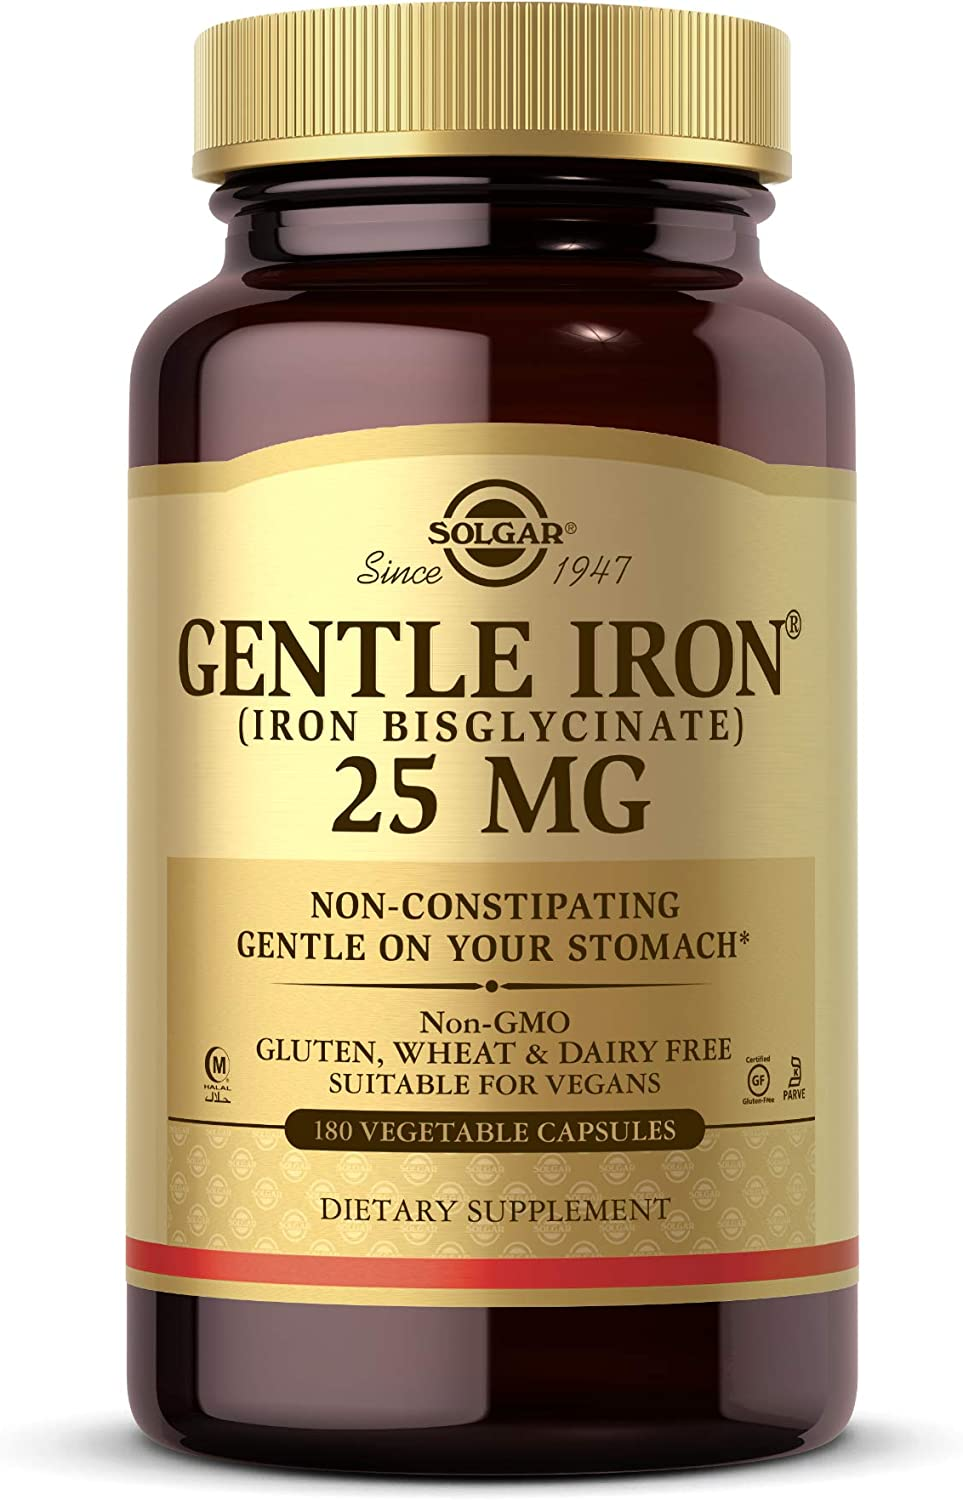 Solgar Gentle Iron, 180 Vegetable Capsules - Ideal for Sensitive Stomachs - Non-Constipating  - Red Blood Cell Supplement - Non GMO, Vegan, Gluten Free, Dairy Free, Kosher - 180 Servings: Health & Personal Care